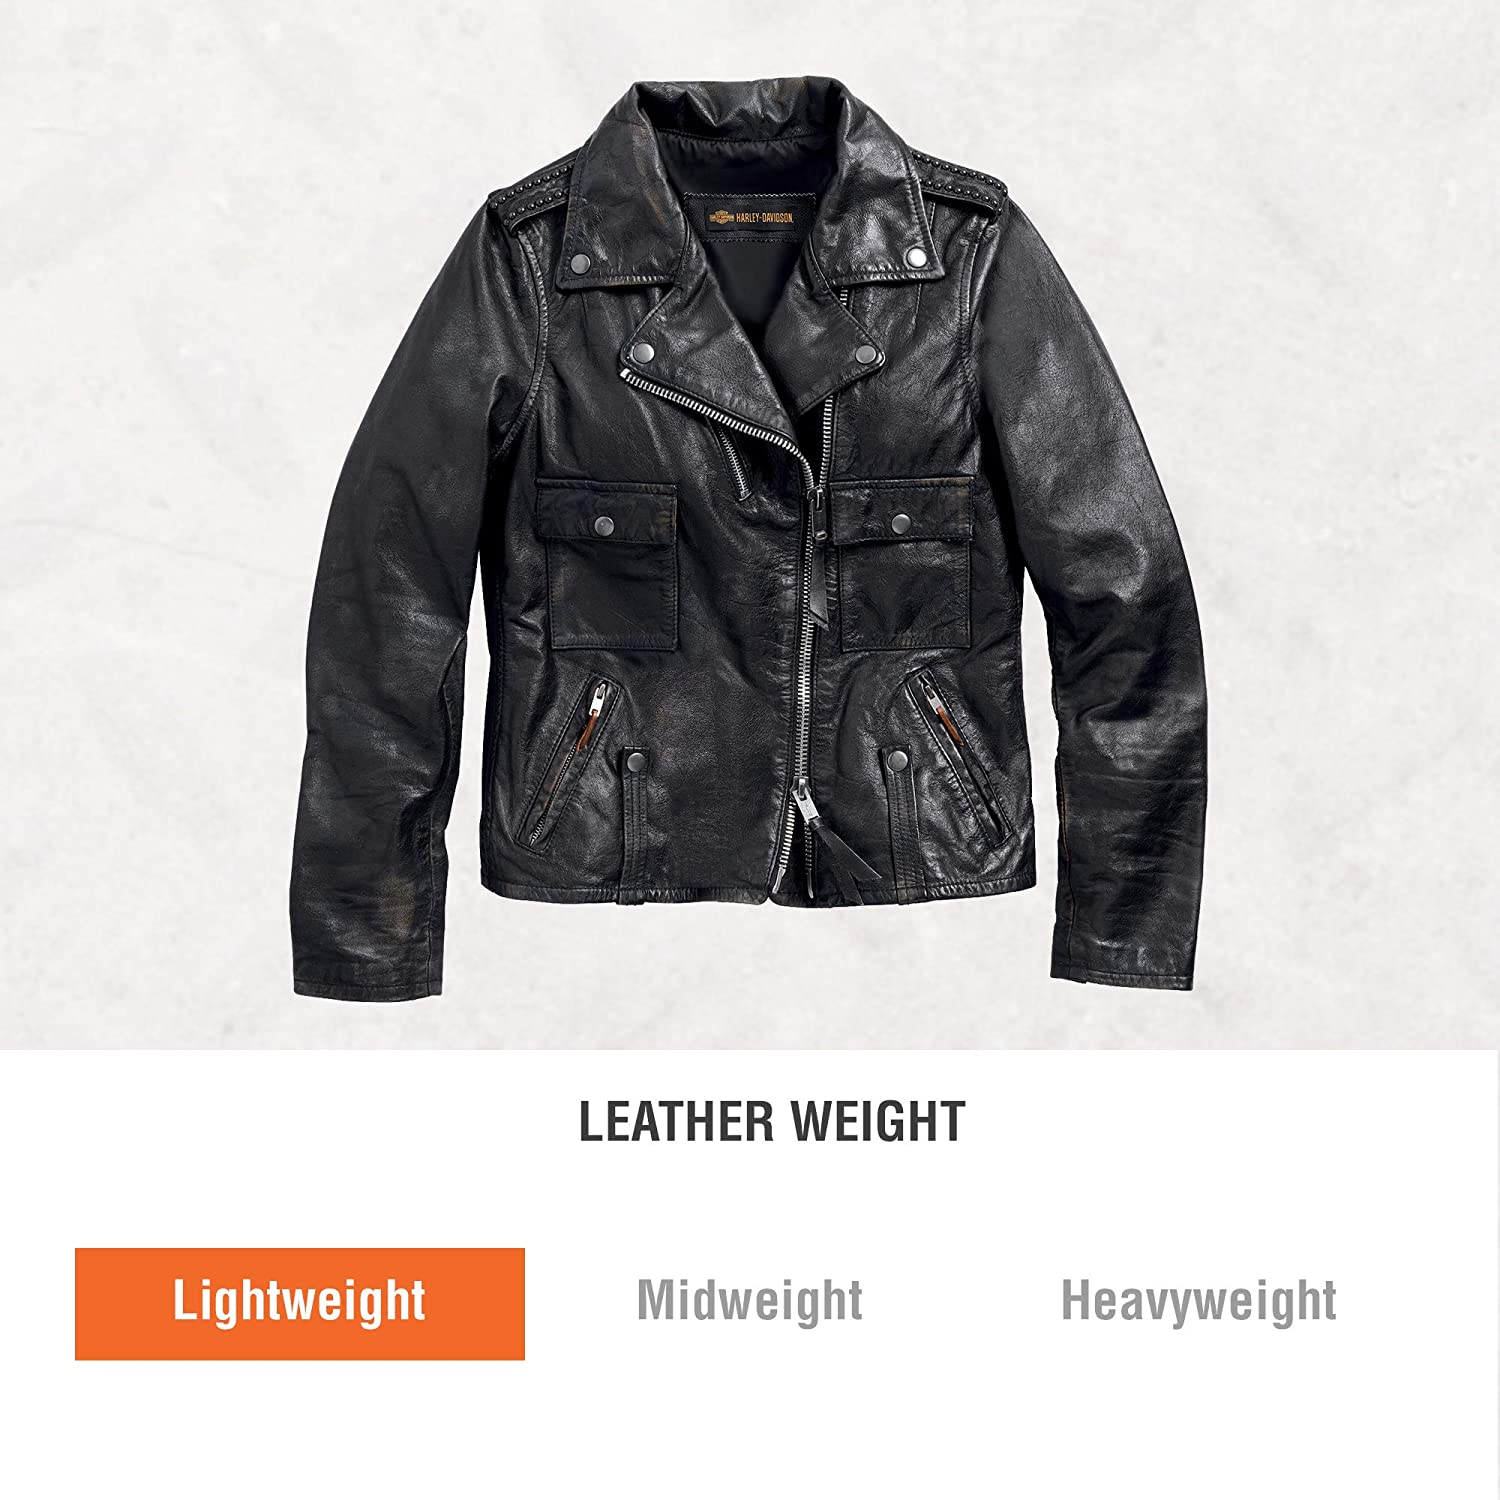 6d42f935bc34 Amazon.com  Harley-Davidson Official Women s Wild Distressed Leather Biker  Jacket